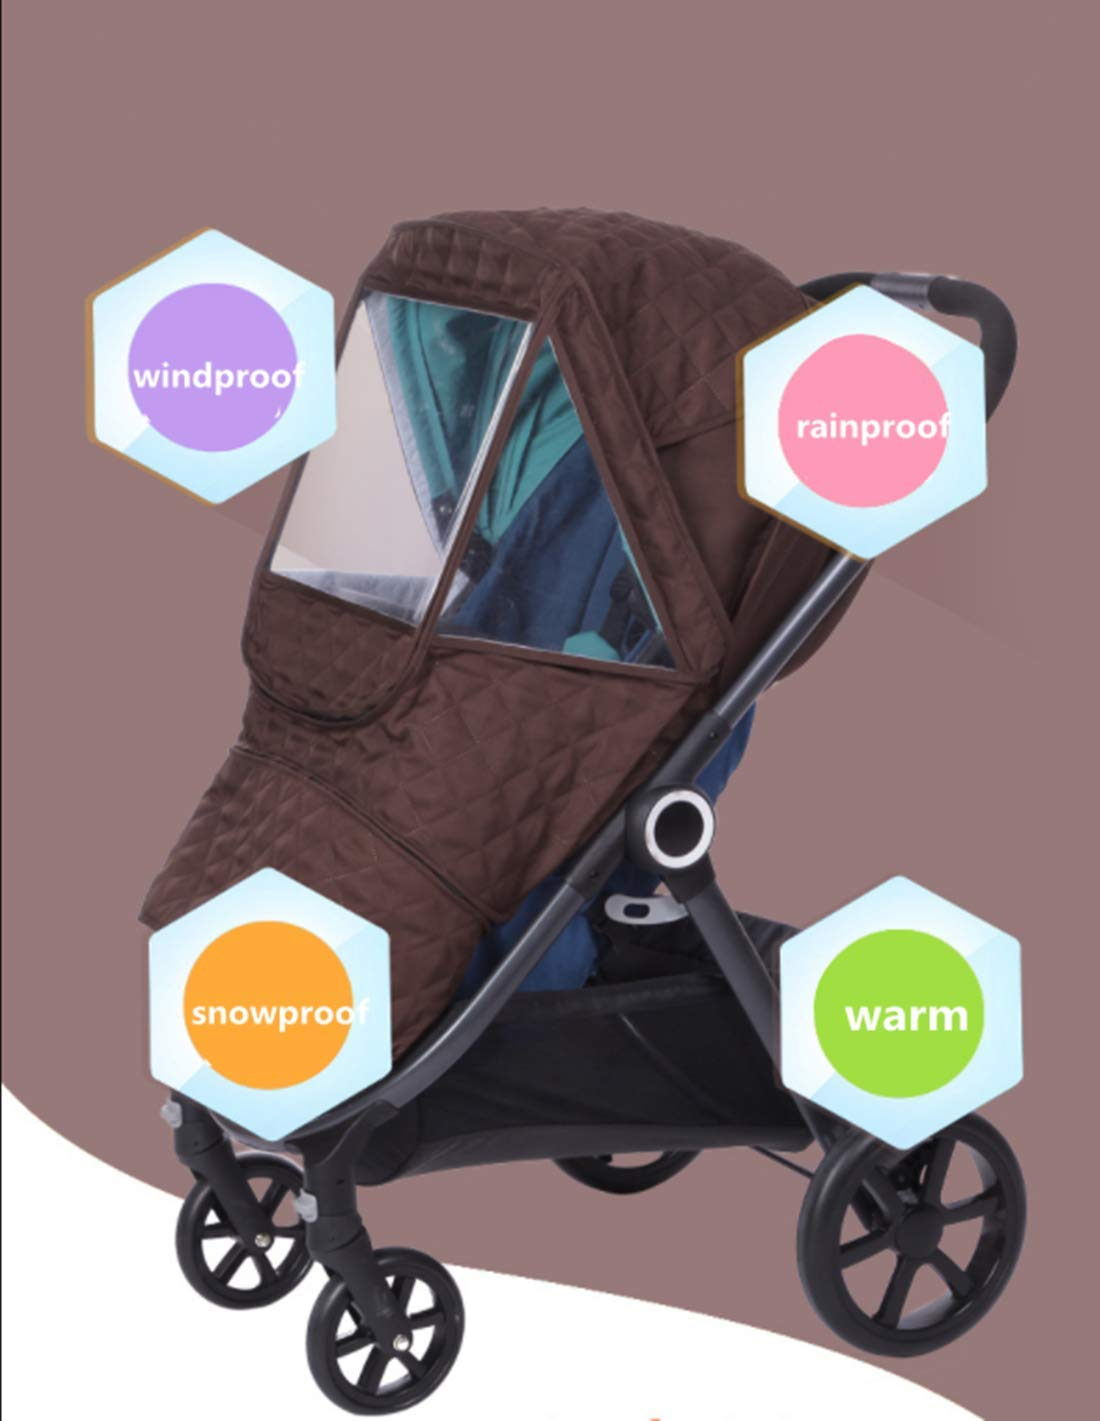 Universal Stroller rain Cover Baby Stroller Windshield rain Cover, Snow Cover, Warm Winter Sunshade Waterproof Cover (Brown Color) by Anglebay (Image #3)